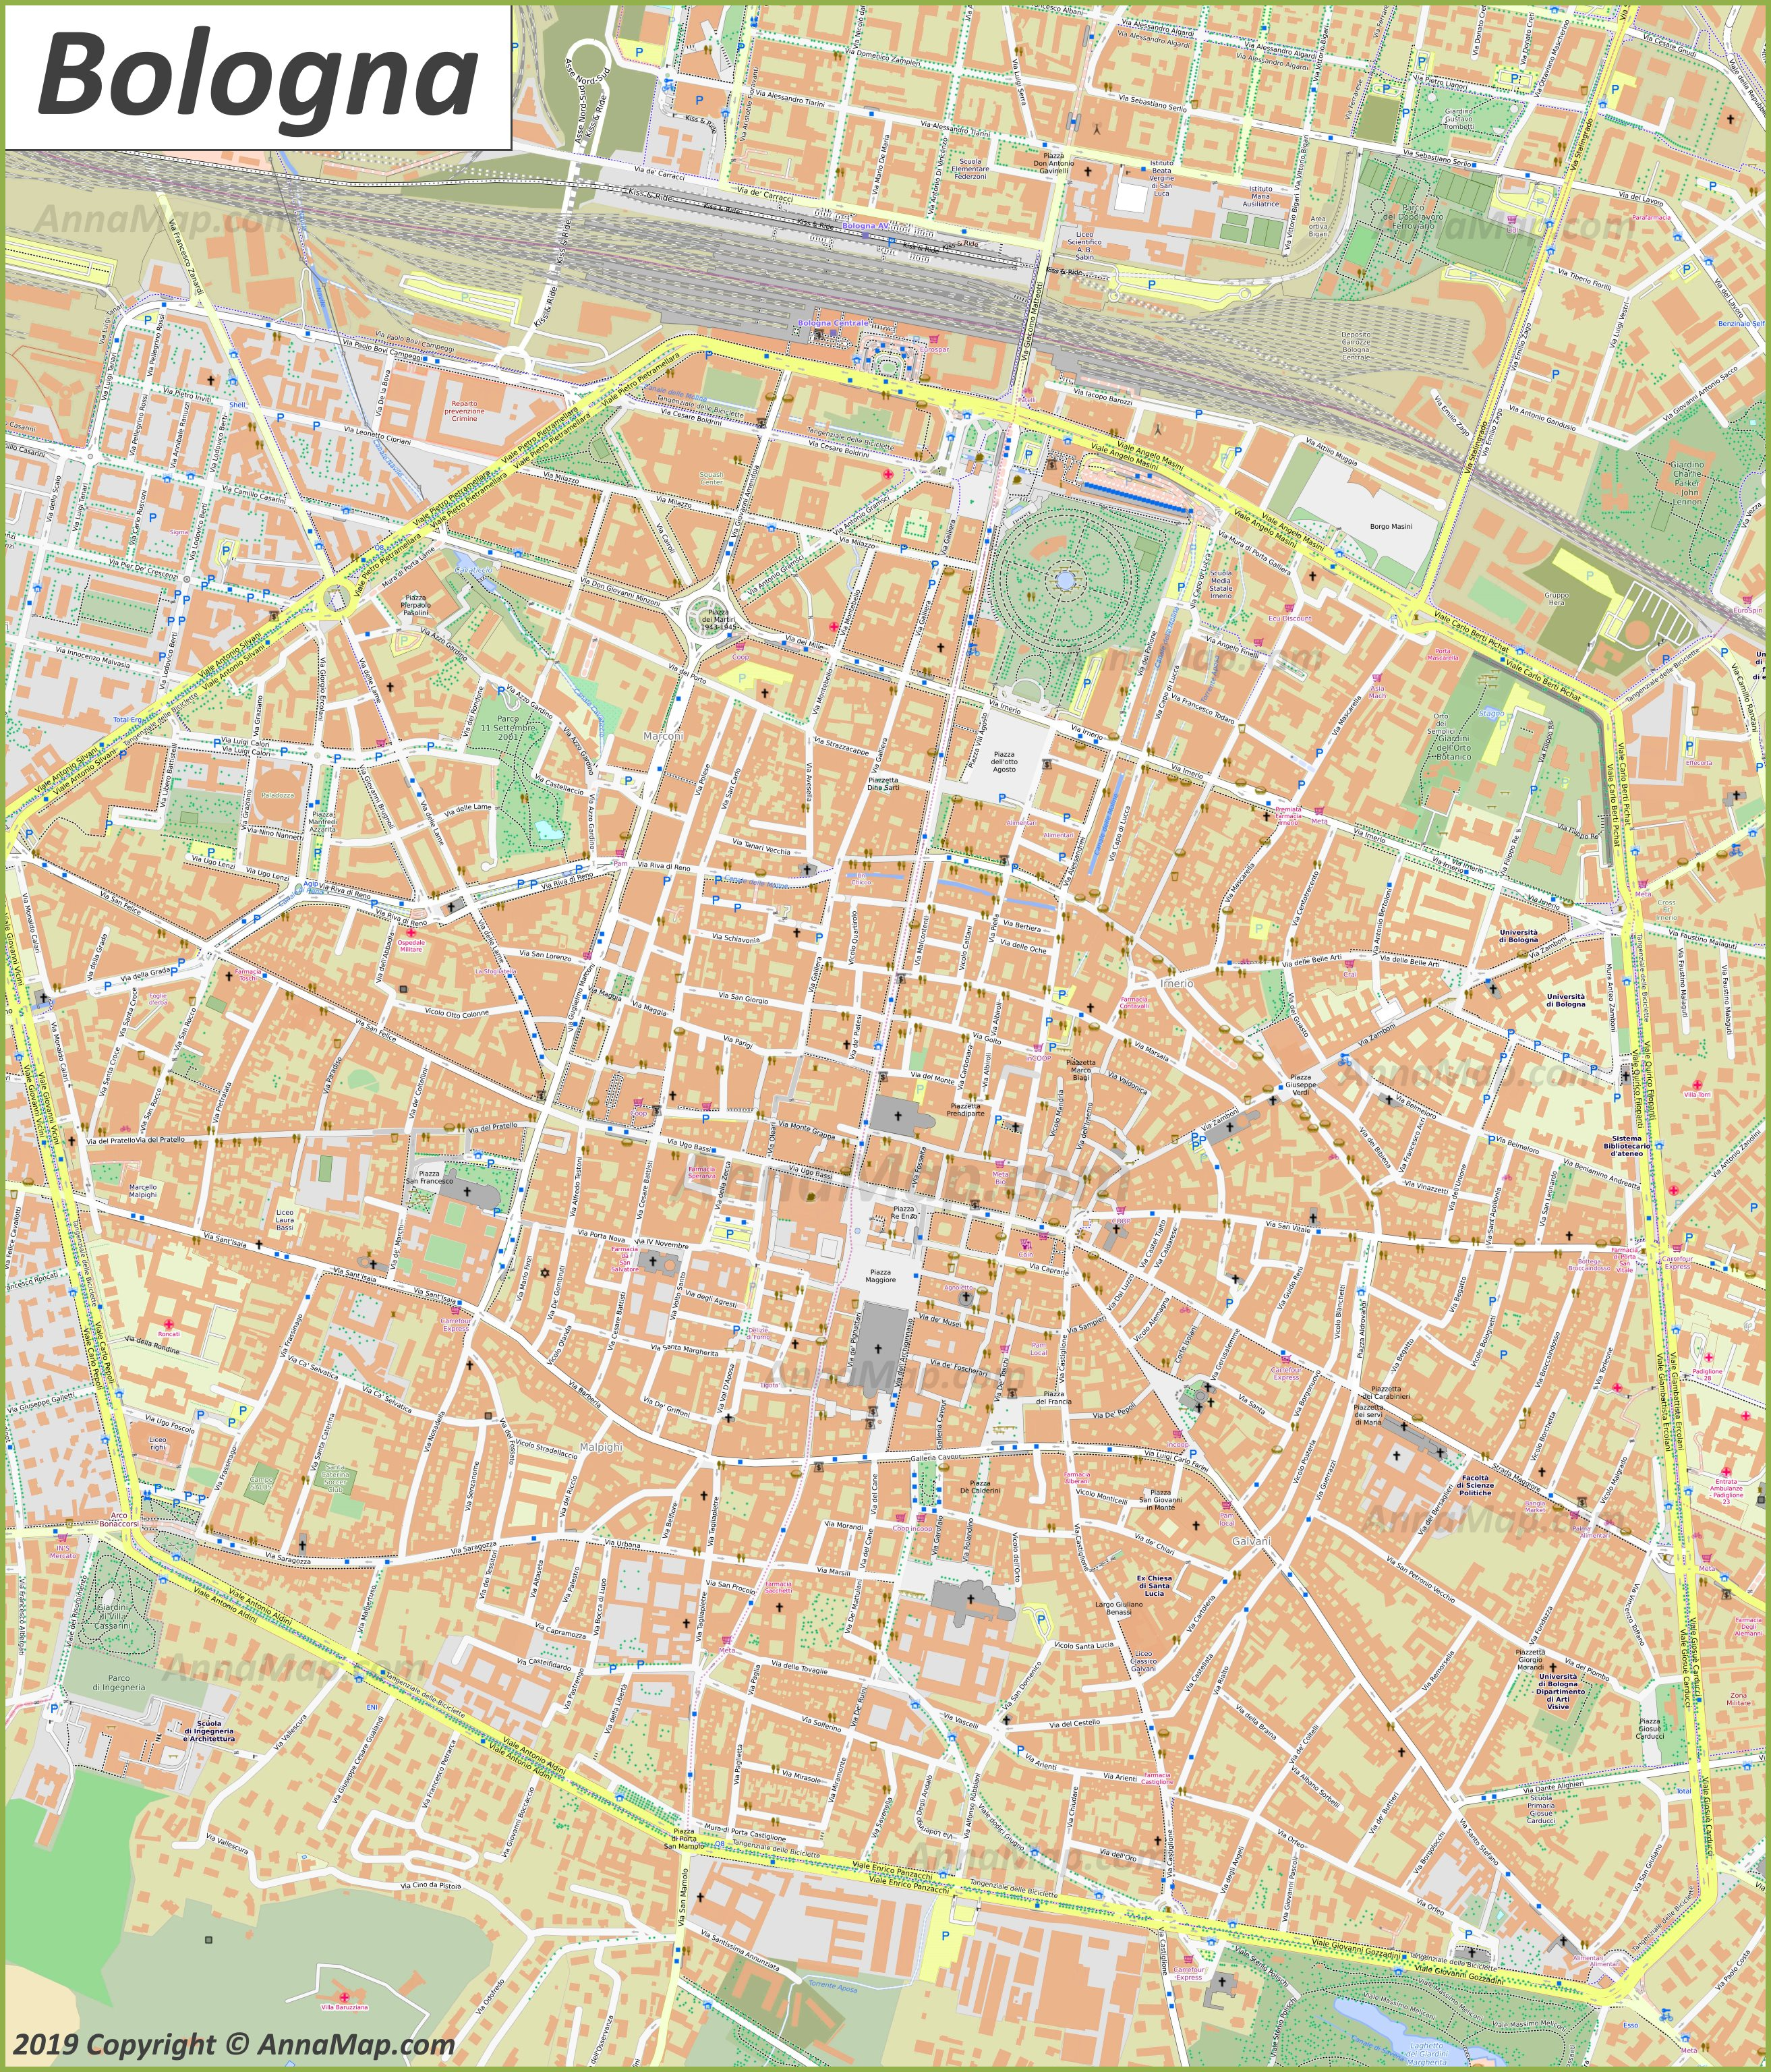 Bologna On Map Of Italy.Detailed Tourist Maps Of Bologna Italy Free Printable Maps Of